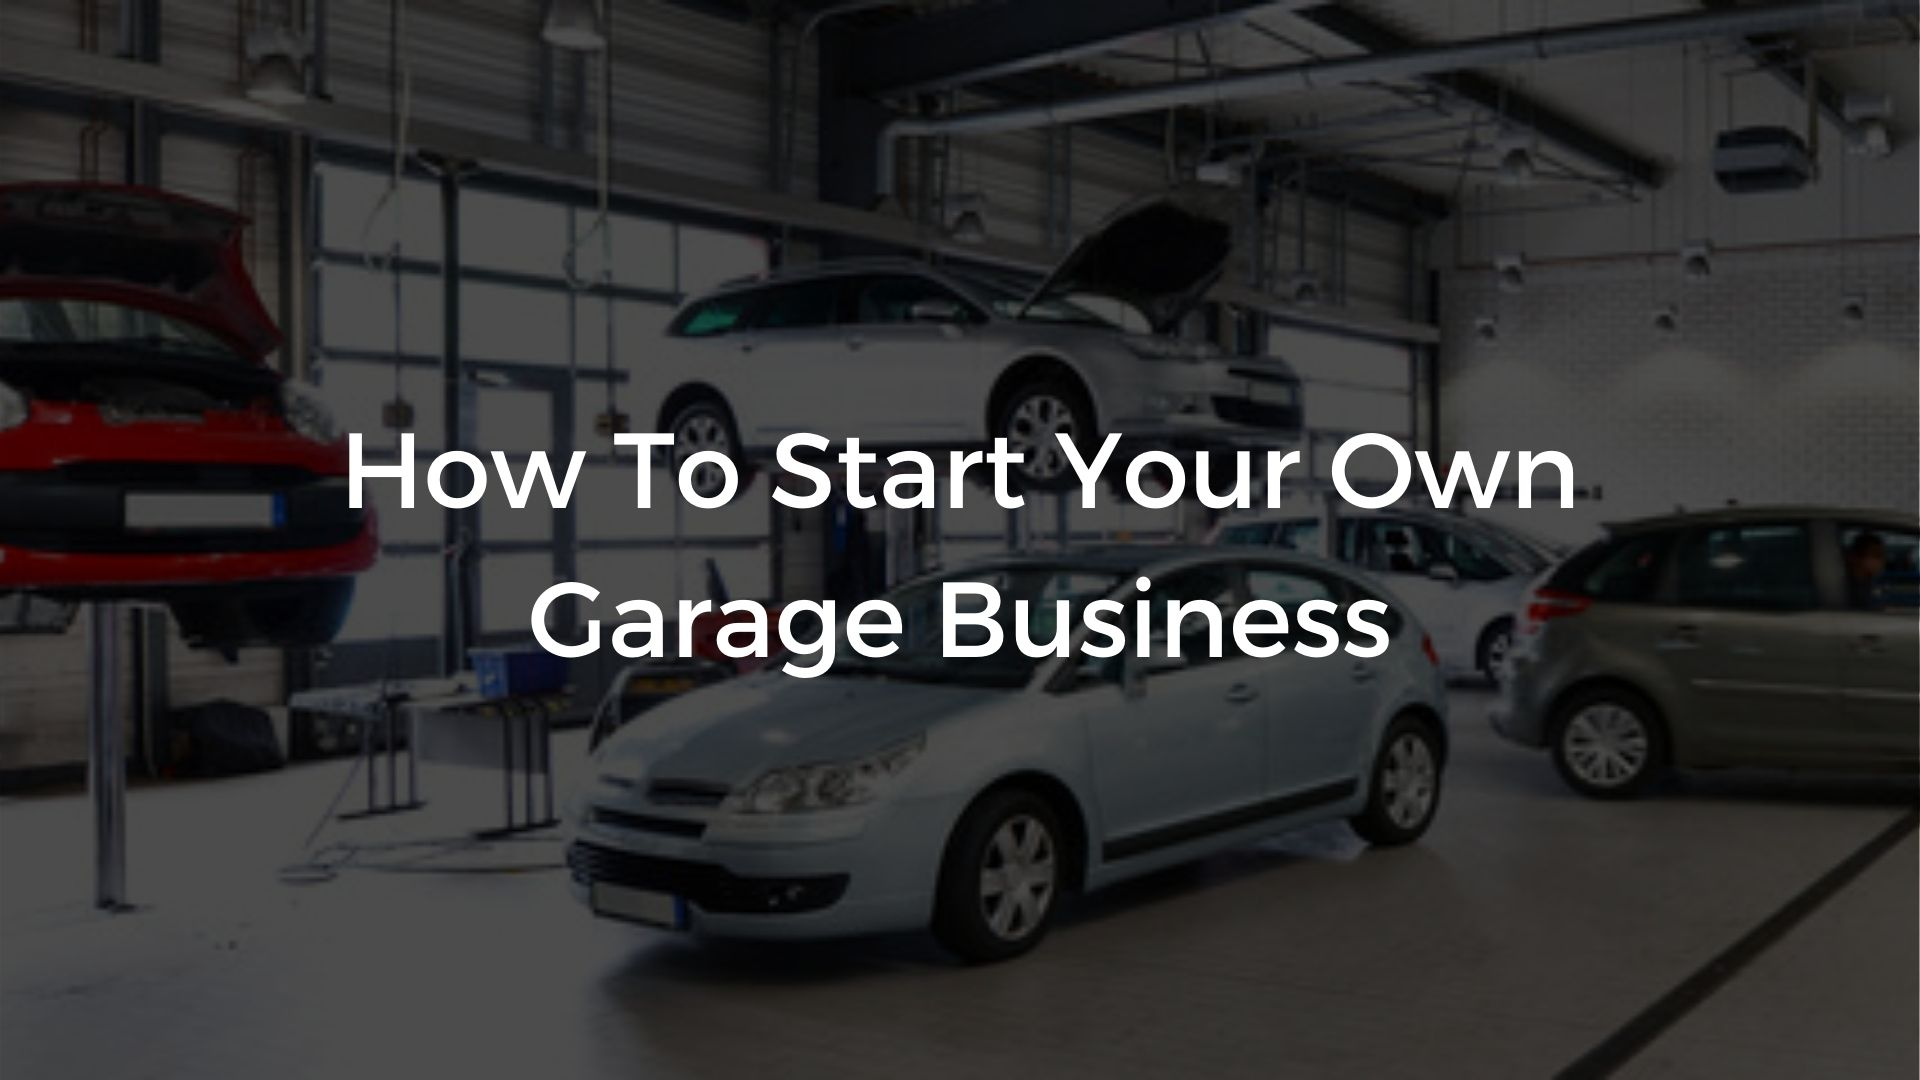 How To Start Your Own Garage Business